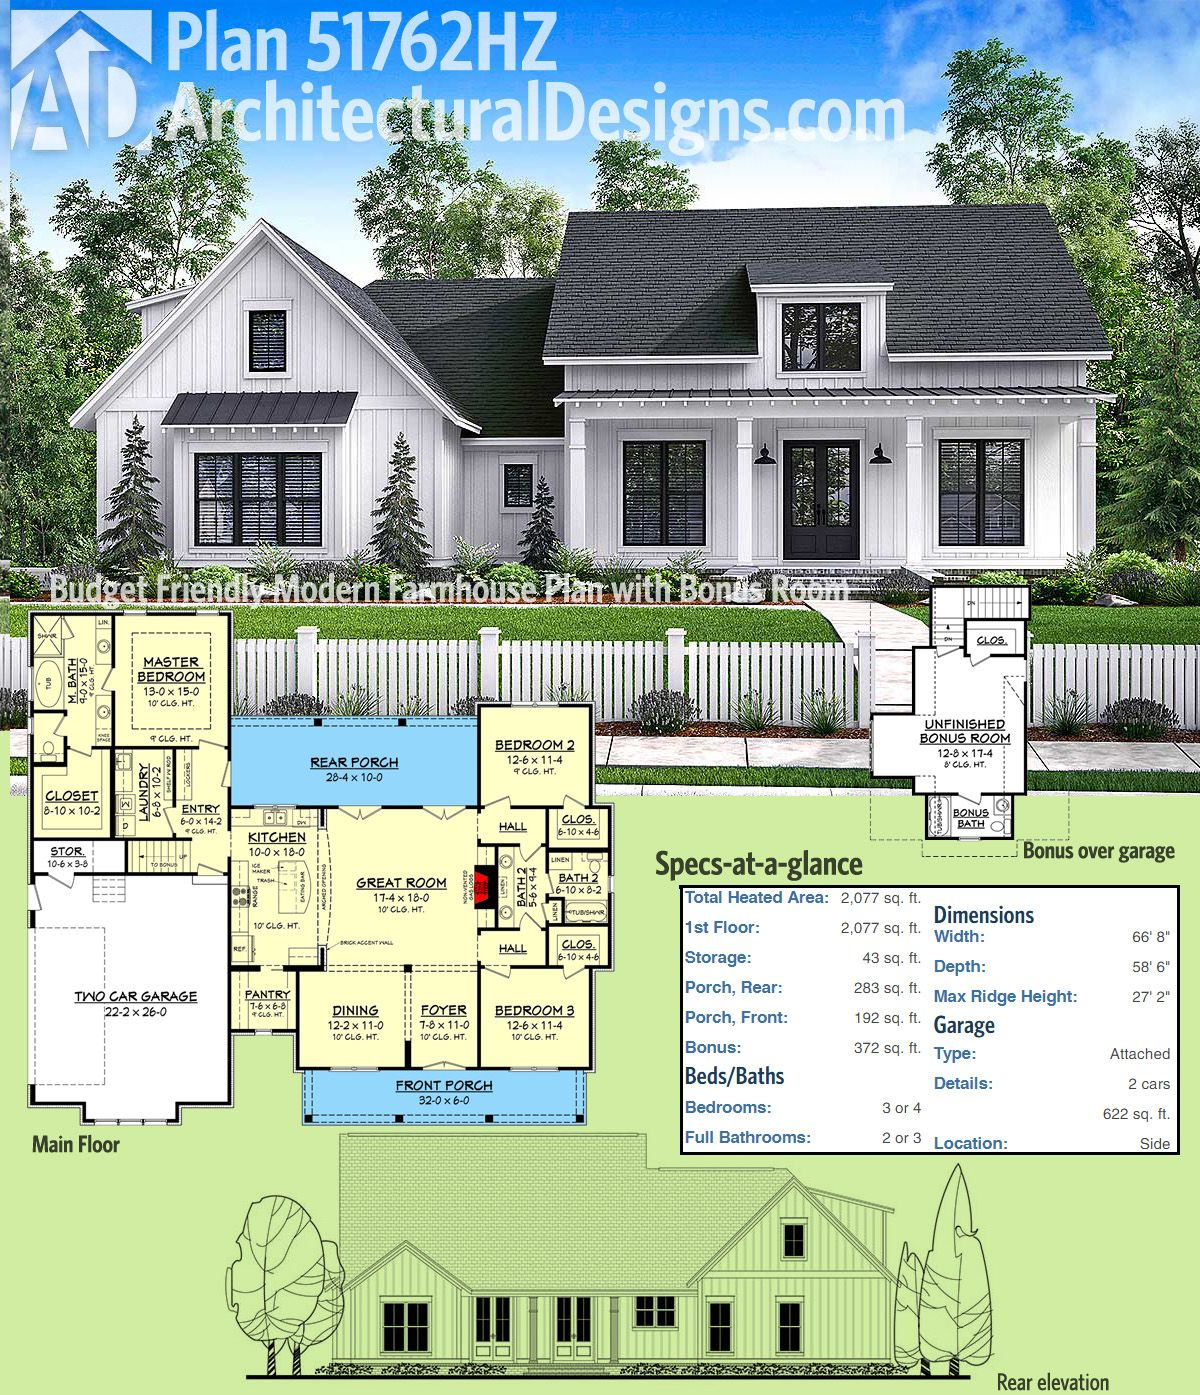 Plan 51762hz budget friendly modern farmhouse plan with for Double garage with room above plans